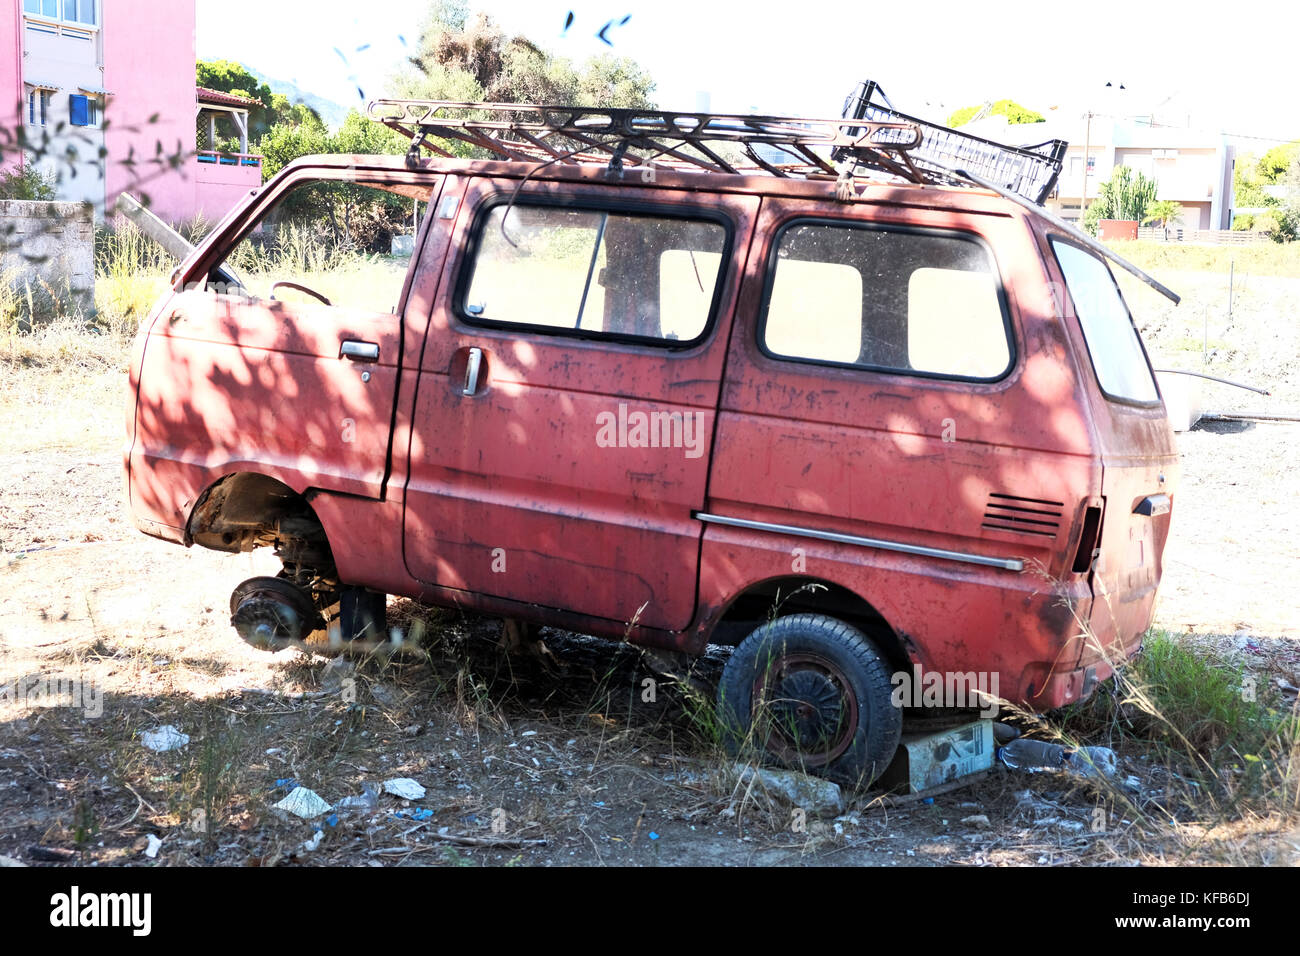 A battered neglected and abandoned people carrier van lies rusting away in a field impacting on the environment - Stock Image